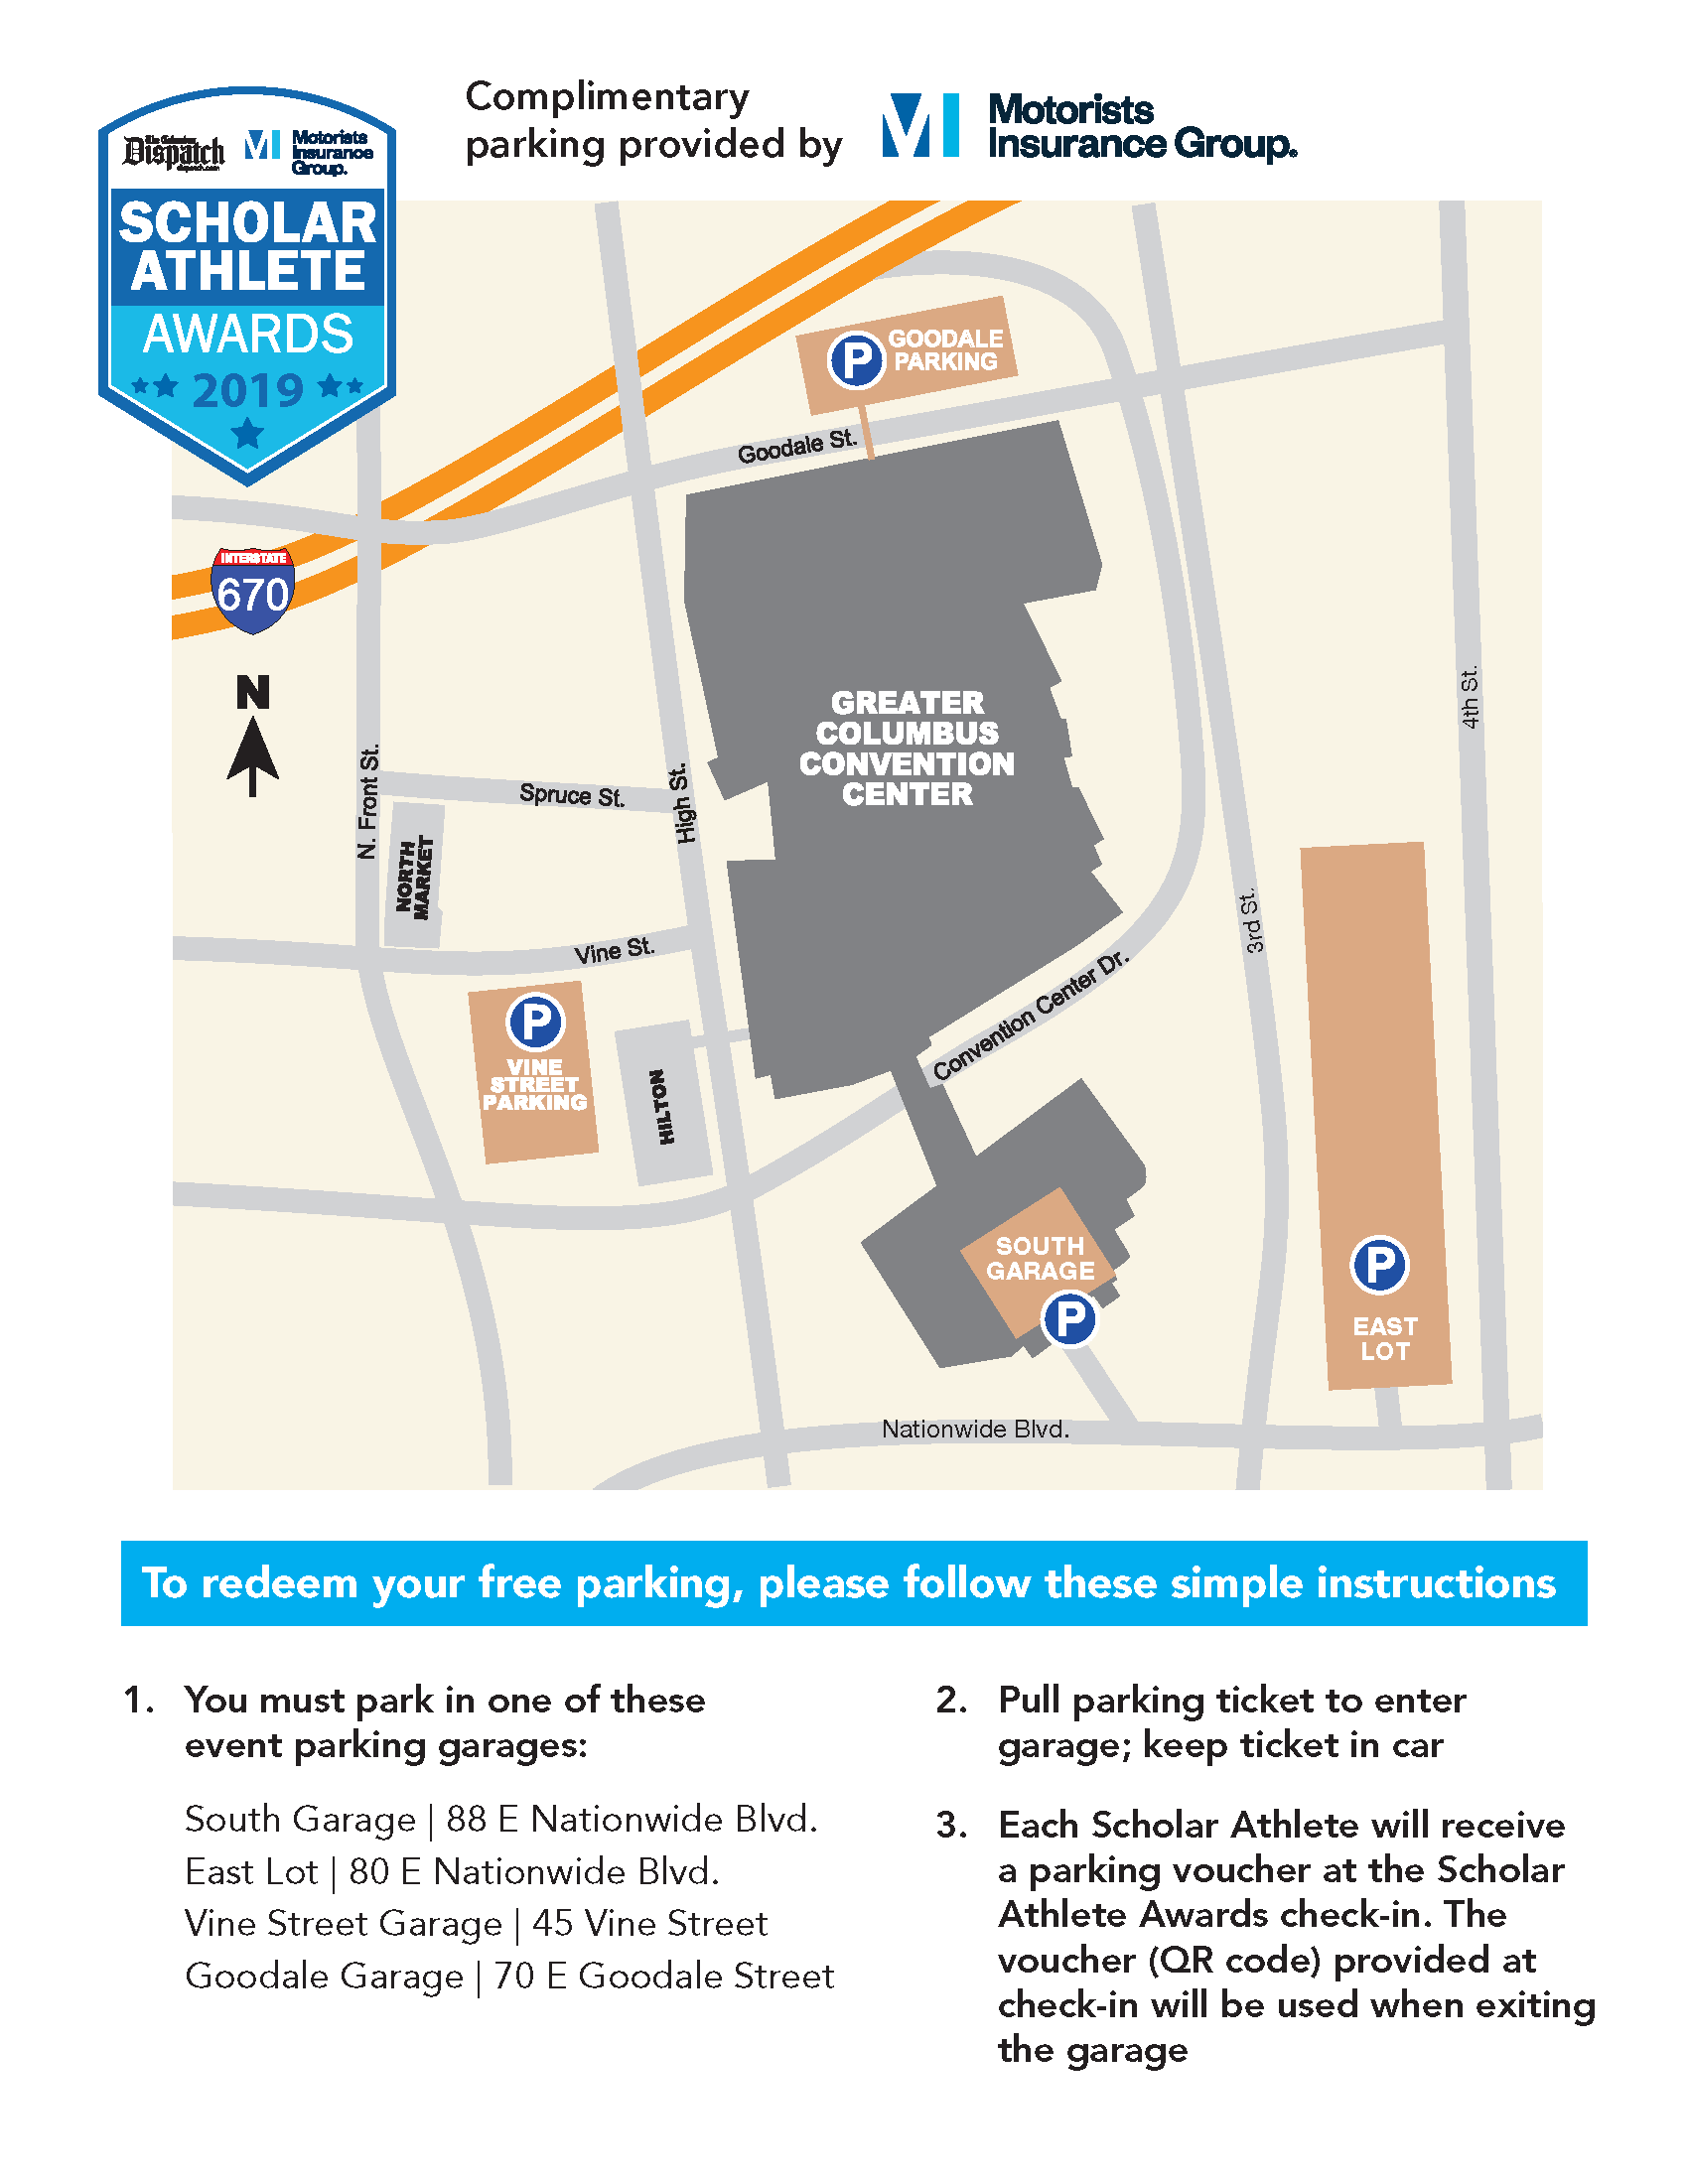 PARKING - Follow the instructions to find your preferred parking location!